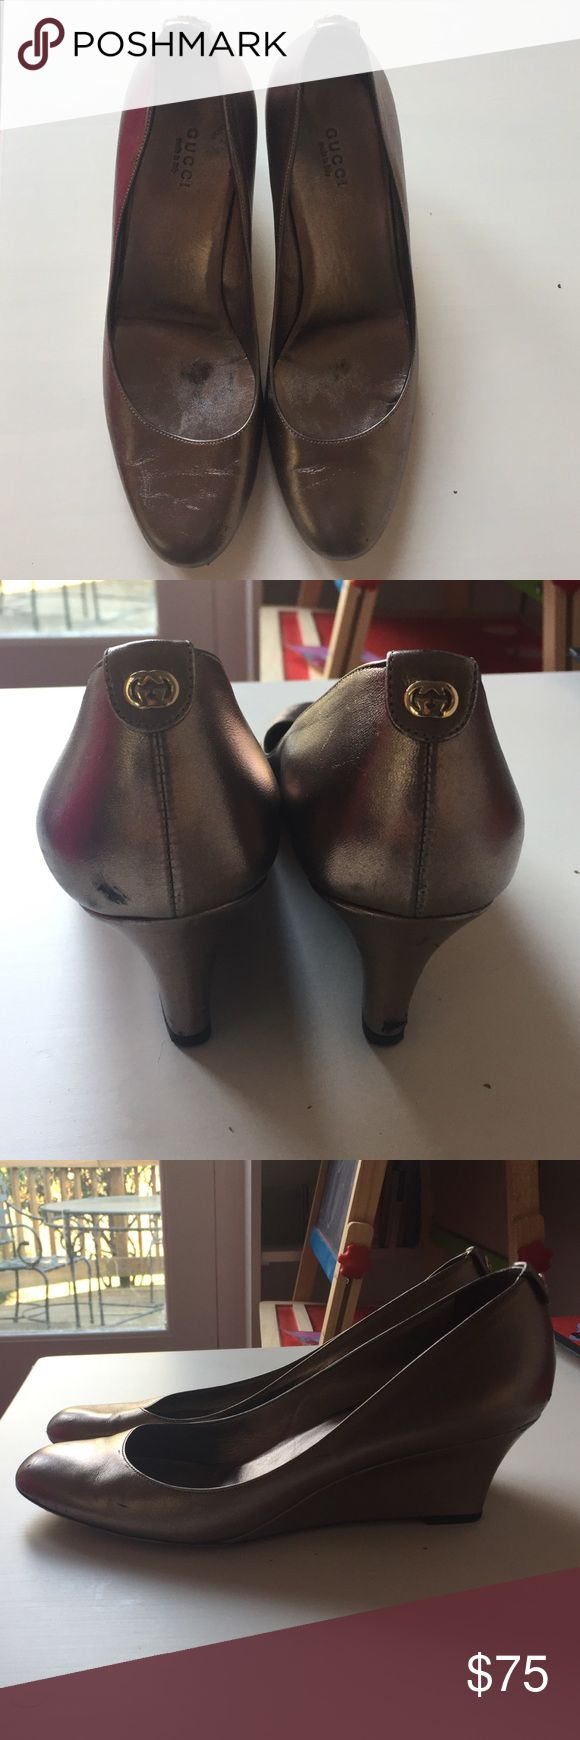 Gucci gold wedge heels.  Size 8 1/2. Gucci gold wedge heels. Used but still have good life left. Some marks on leather as shown. Size 8 1/2. Gucci Shoes Wedges